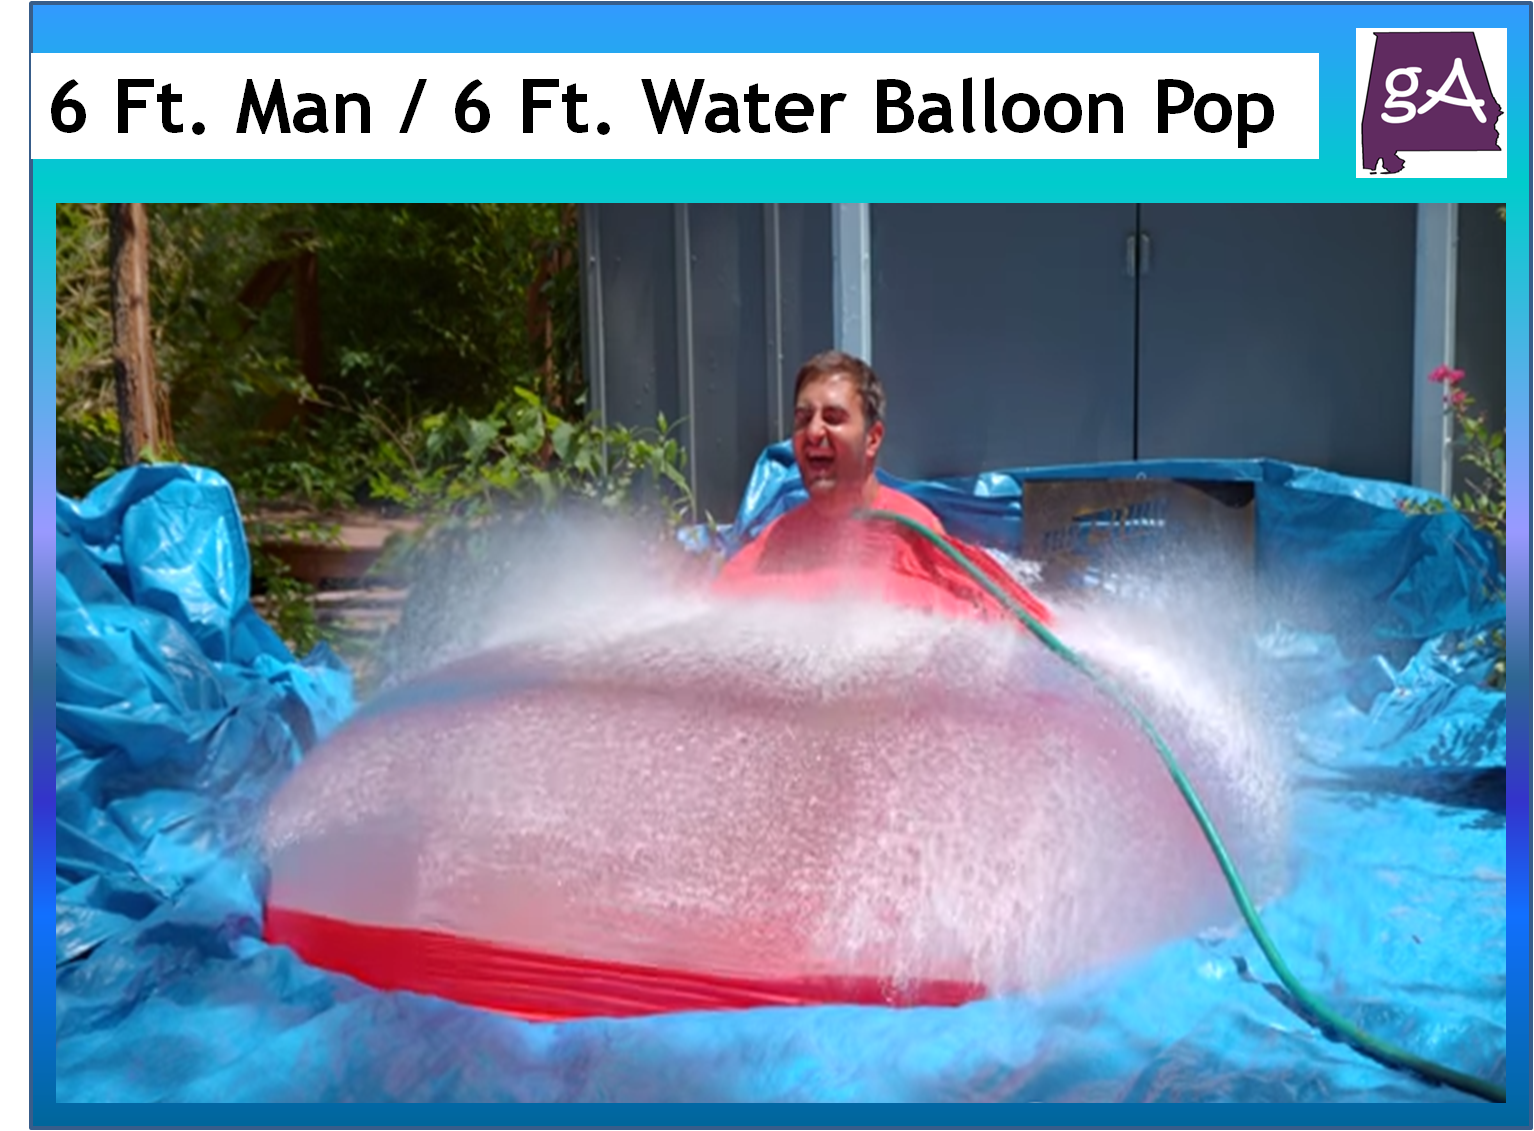 The Youtube Channel The Slow Mo Guys Did A Super Summer Activity Daniel Gruchy Climbed Inside A Giant Six Foot Water Balloon As It Gets Filled With Water